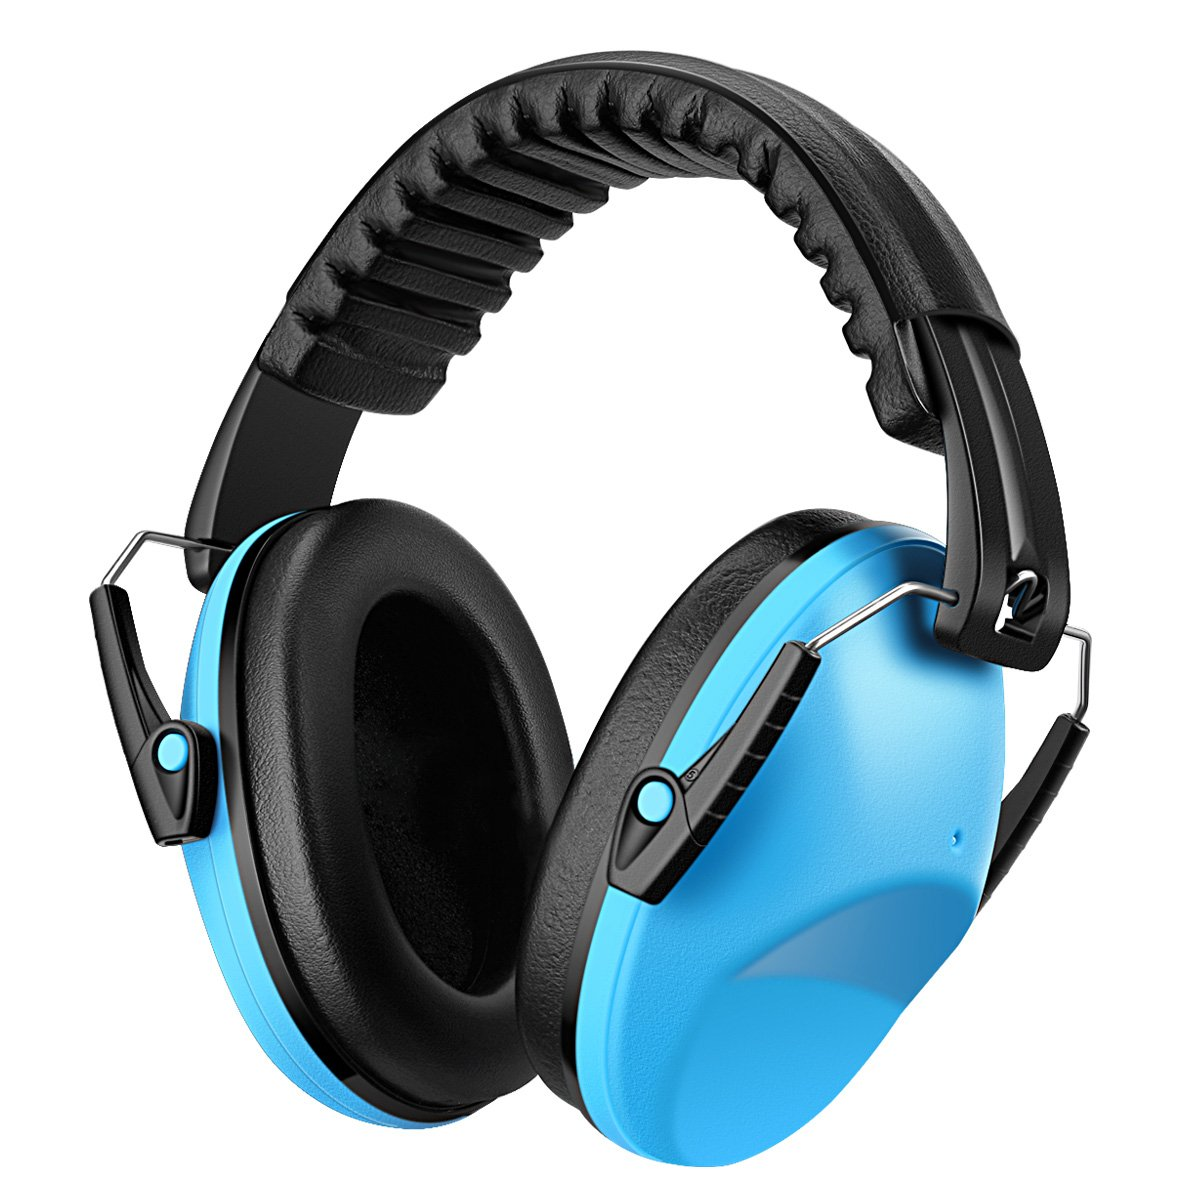 KeeKit Kids Ear Protection Safety Ear Muffs, NRR 26dB Noise Reduction Hearing Protection for Kids, Soft & Adjustable Ear Protection for Shooting Hunting Season for Kids, Toddlers, Teenagers